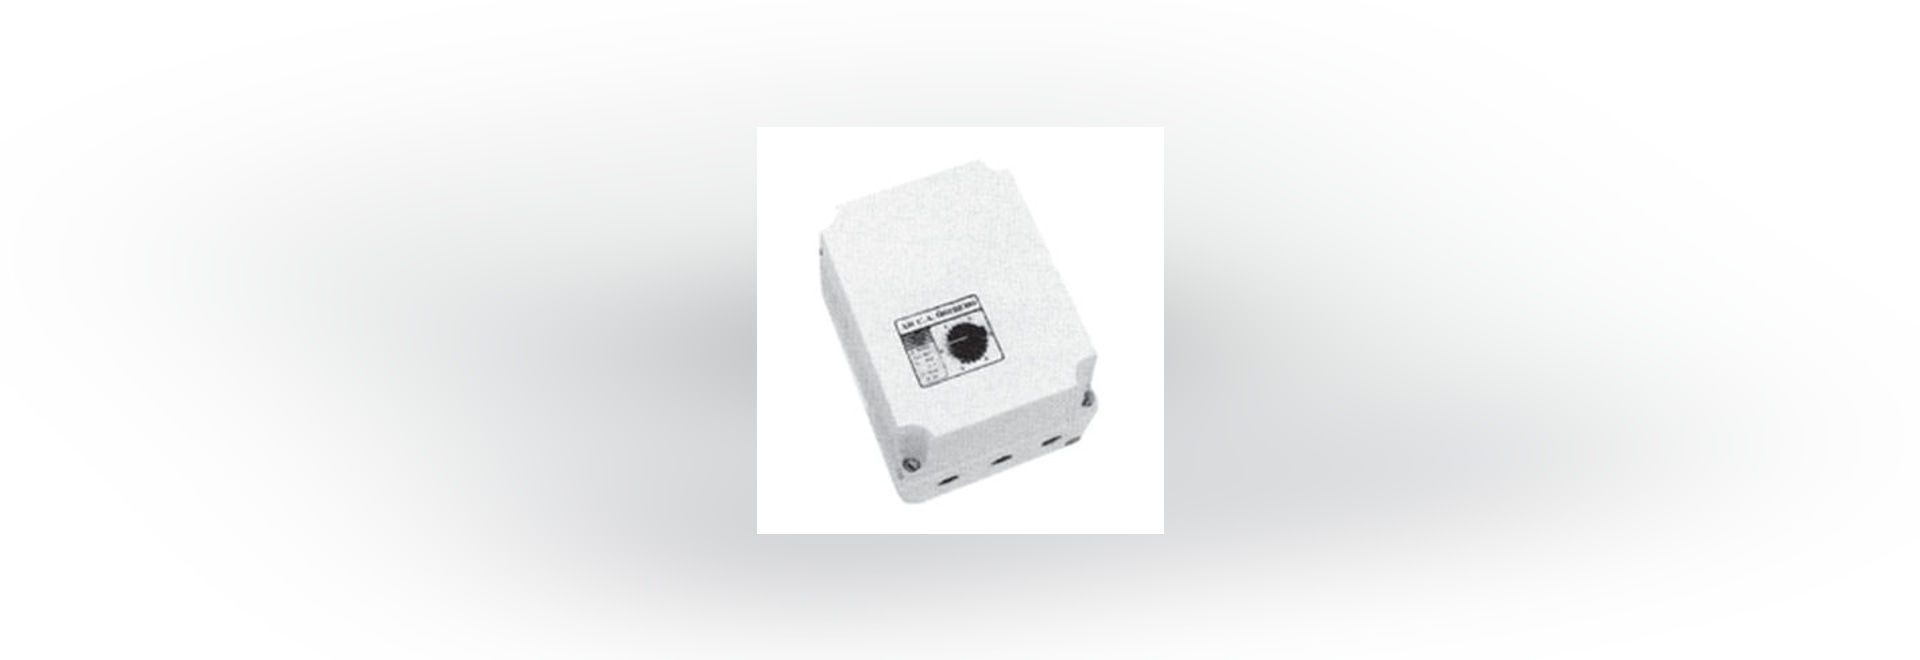 NEW: ventilation speed controller by VENCO A.S.